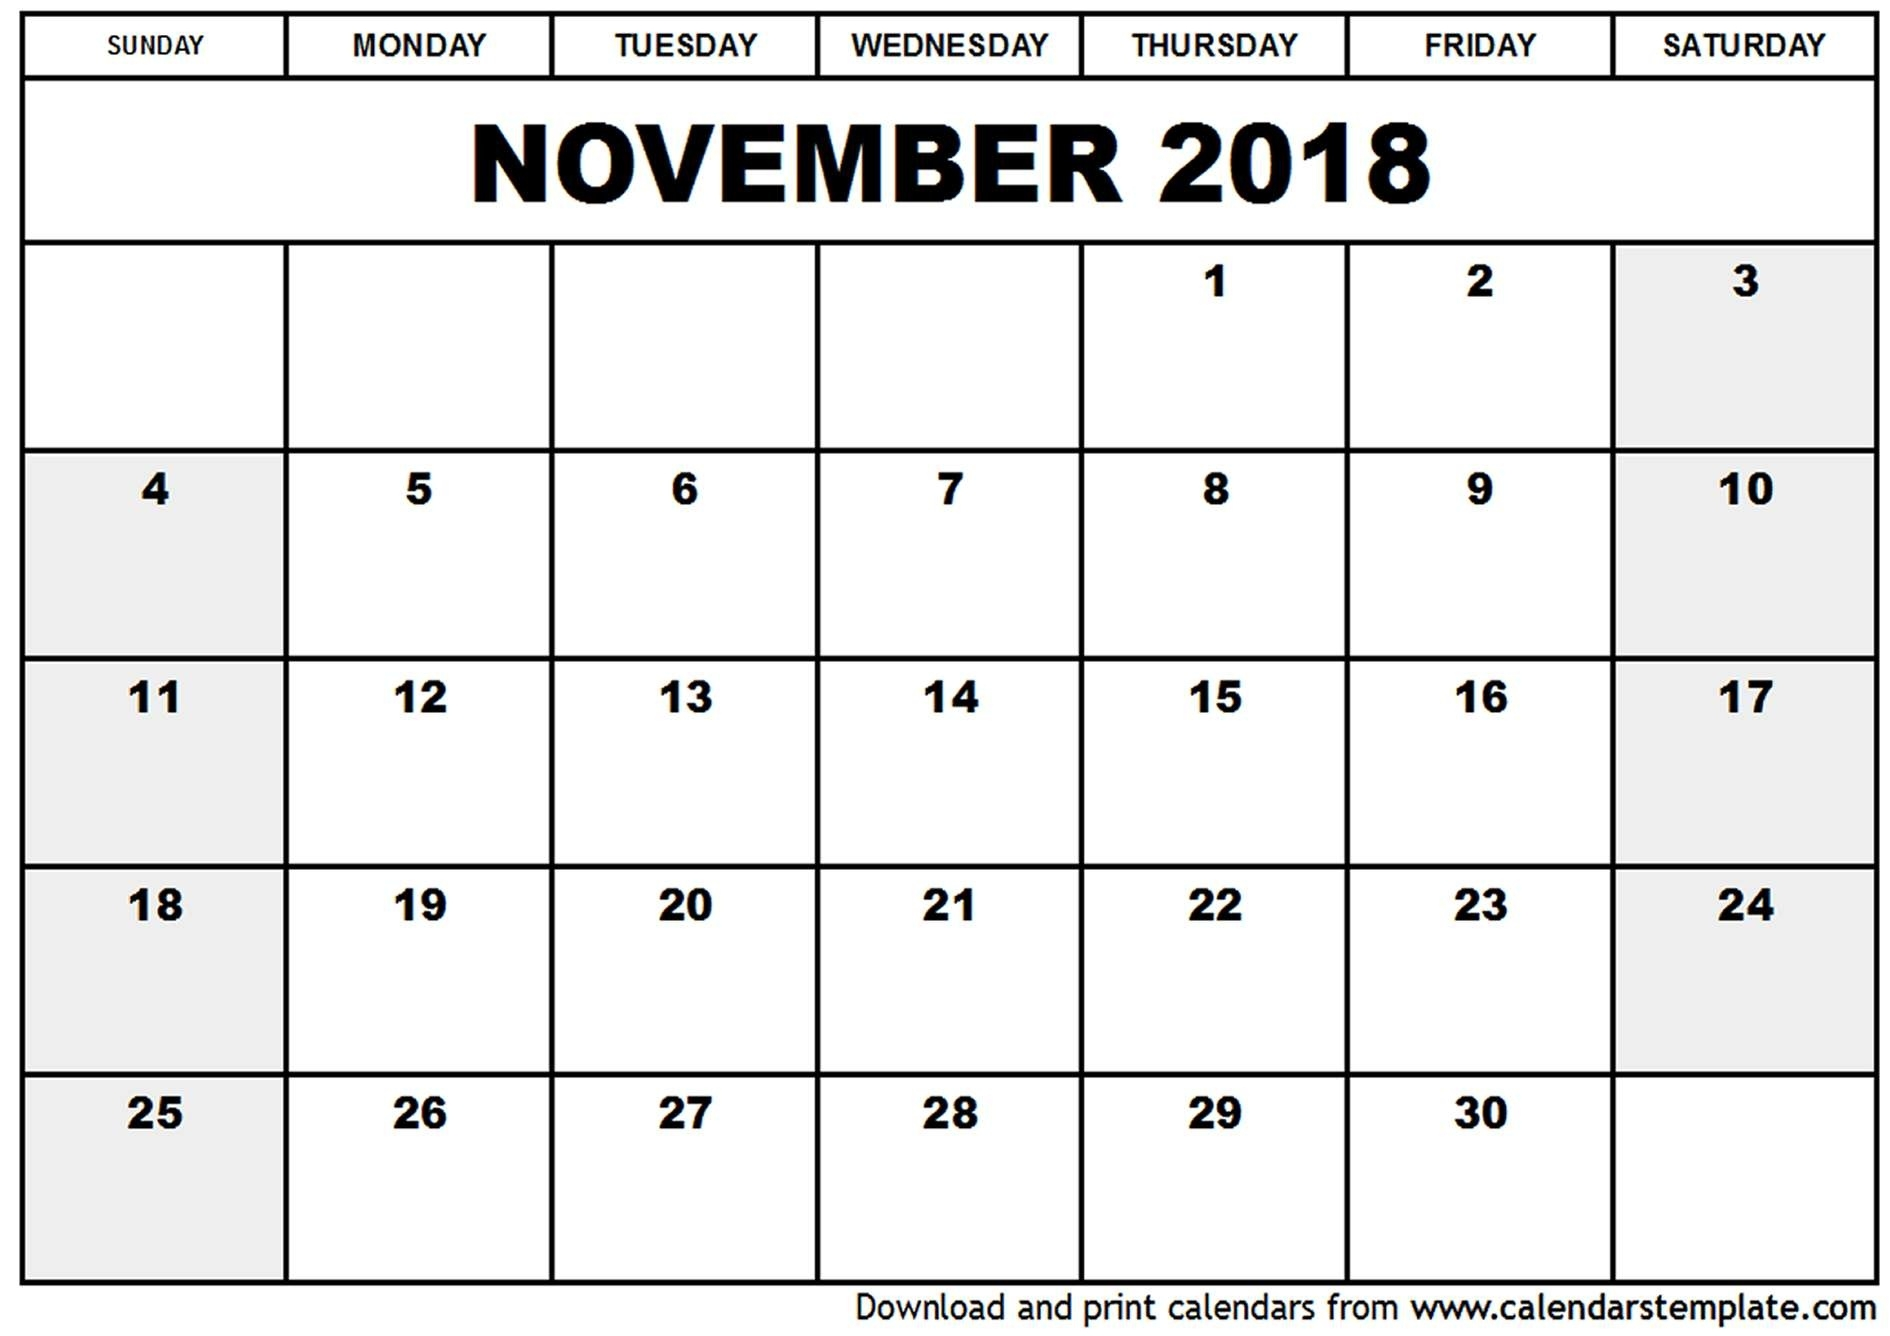 Printable Calendar November 2018 - Yeniscale.co  Print Calendar Month Of September